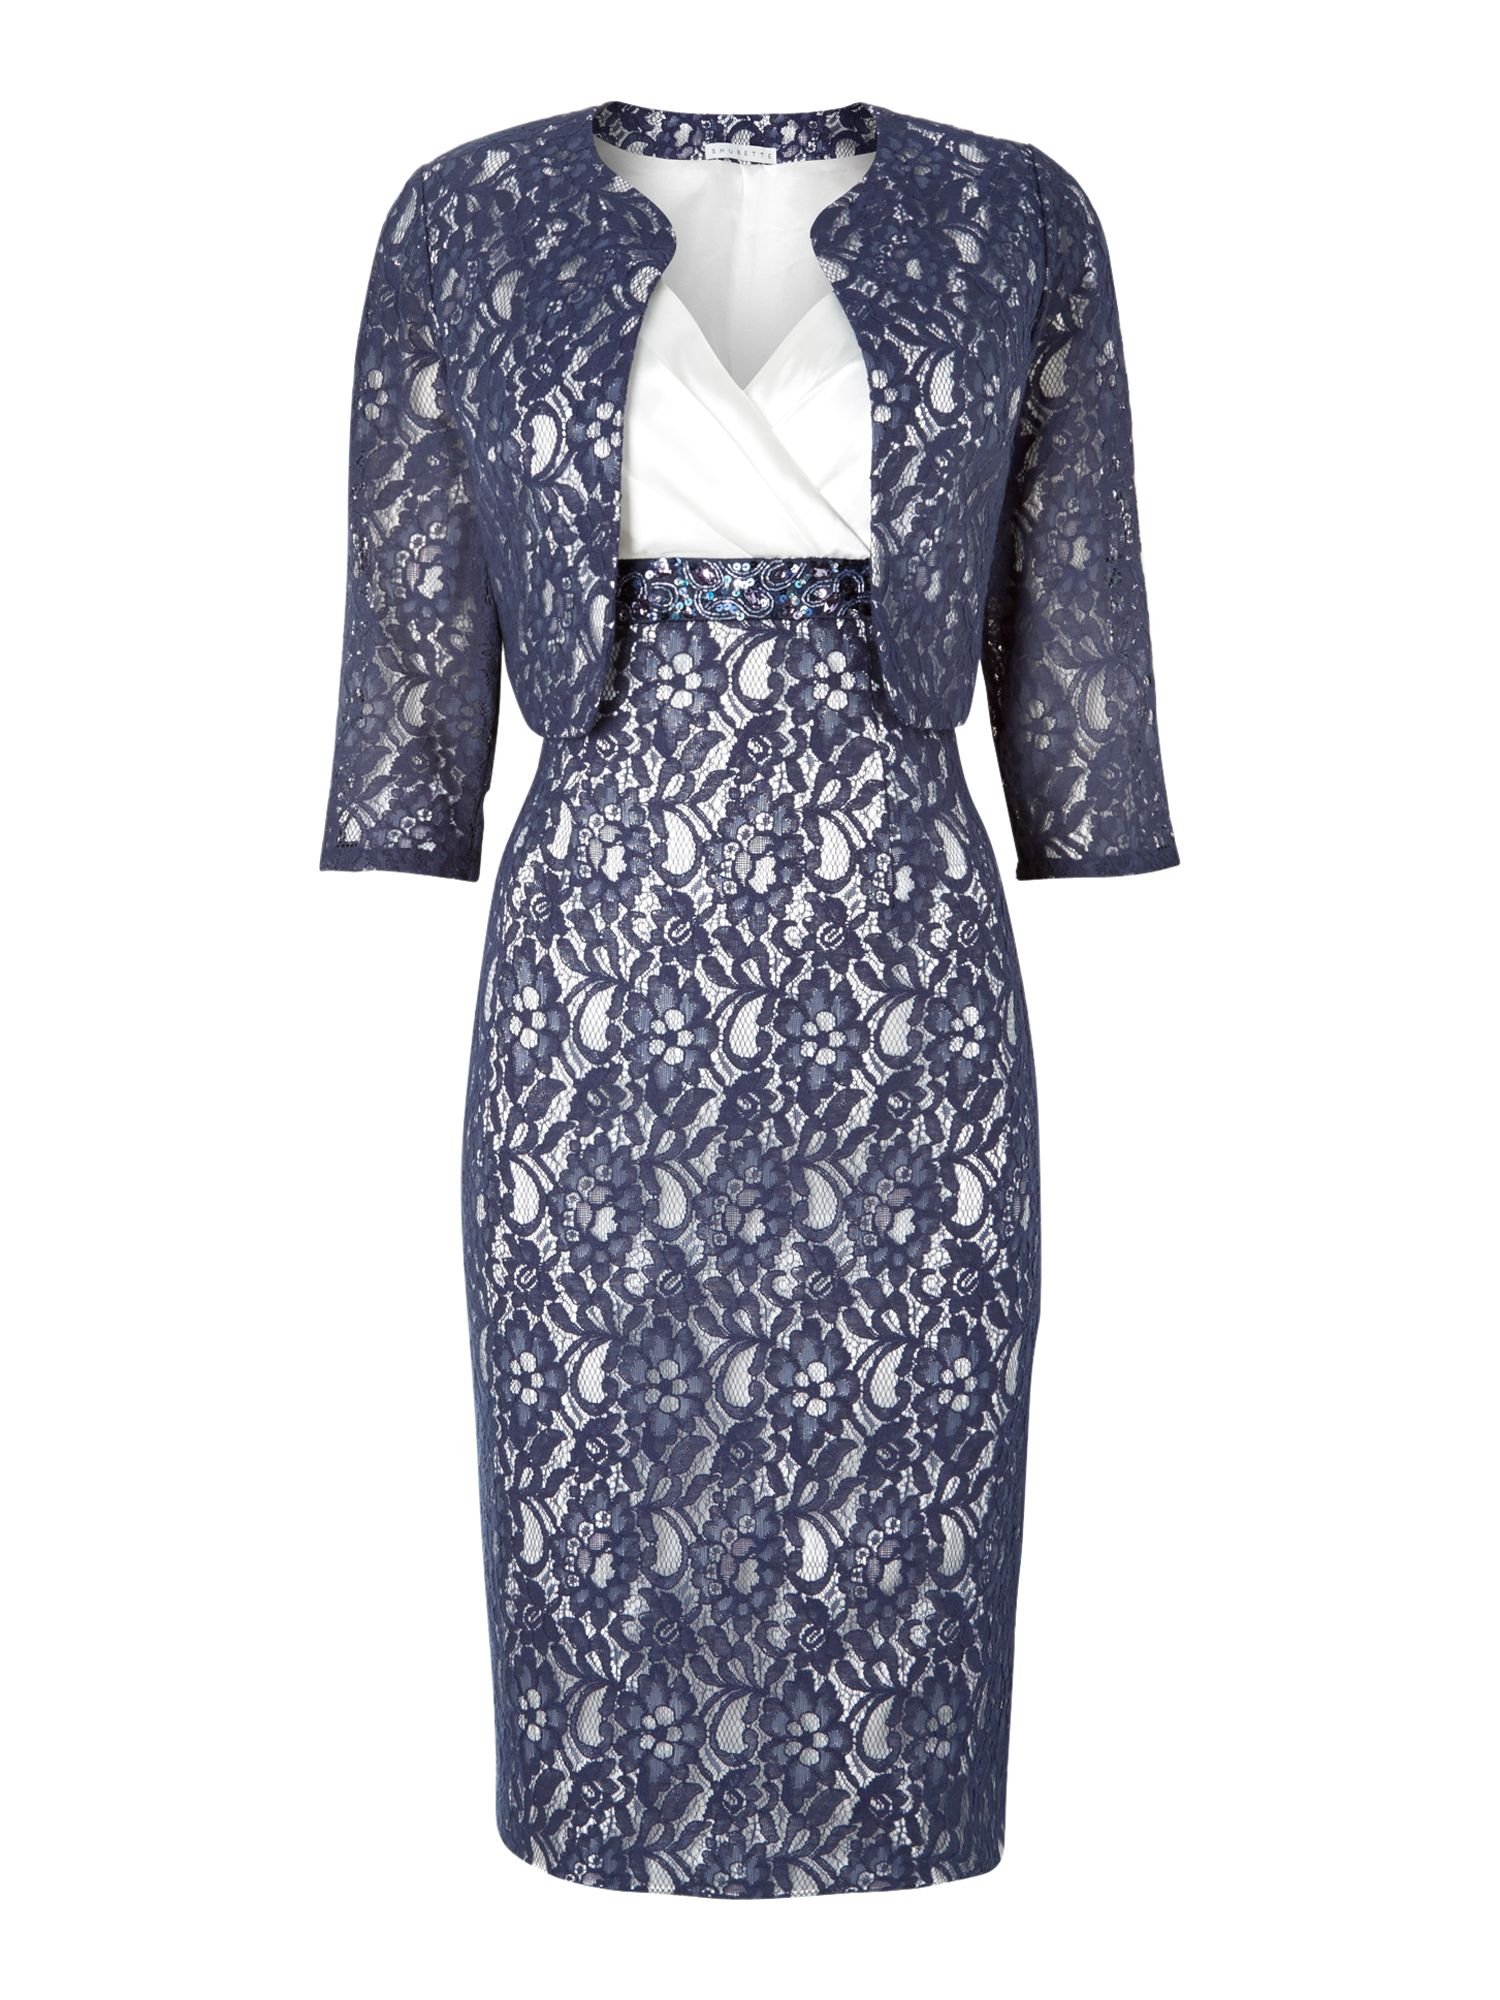 Shubette Lace and Satin Dress and Jacket, Navy & White